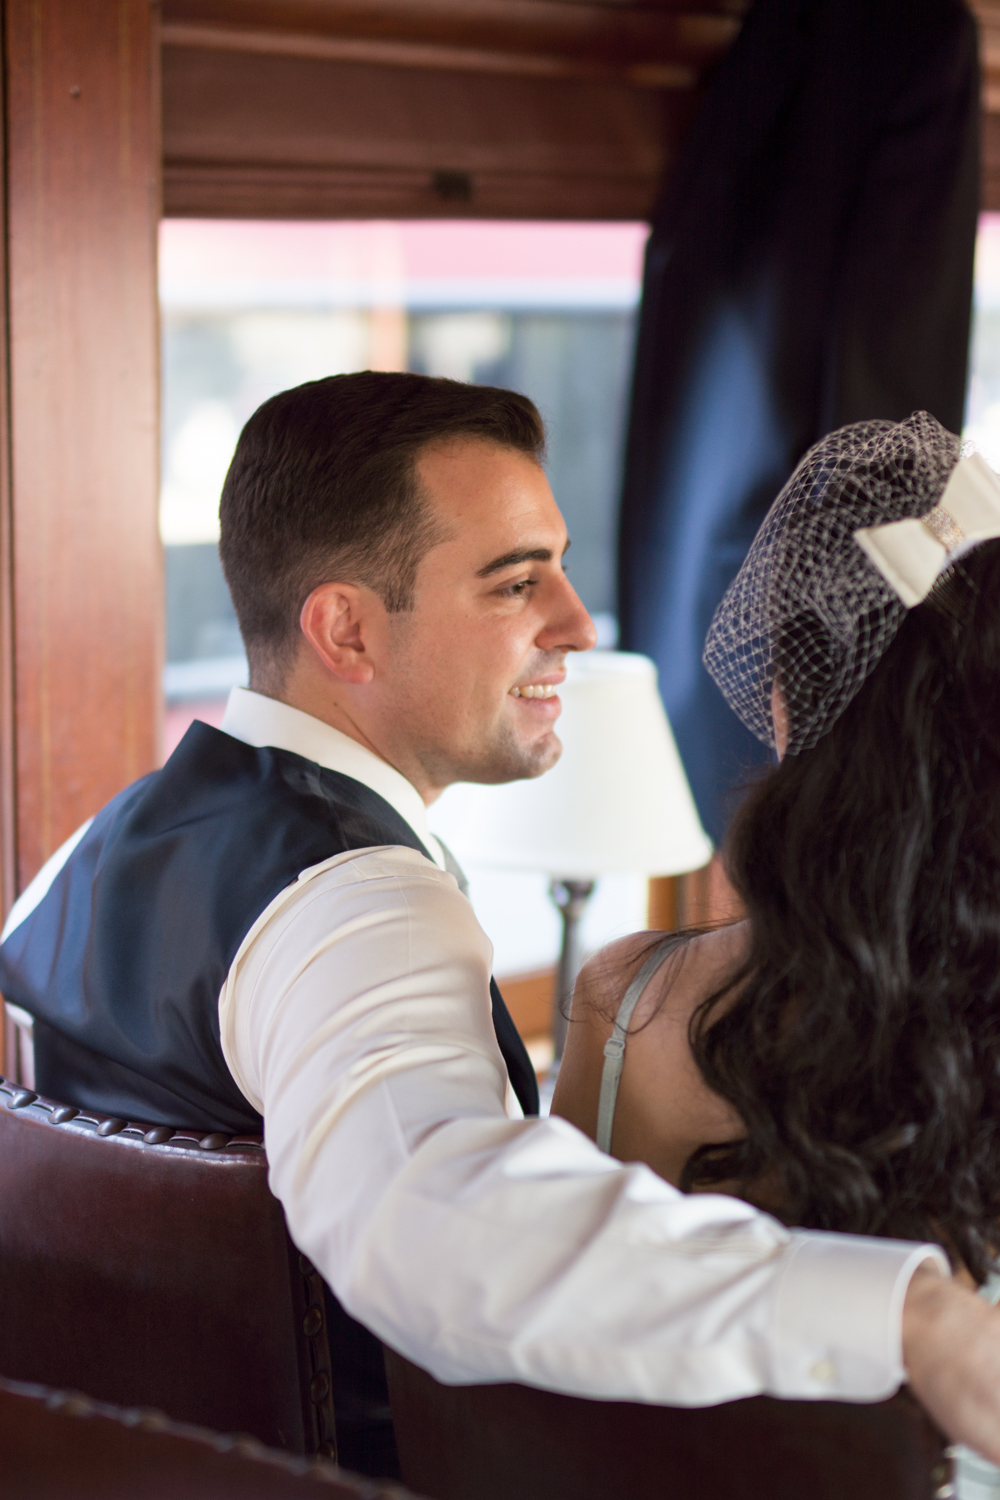 Michelle and Joe- Whippany Railway Musem 1950s Engagement - New Jersey -Olivia Christina Photography-36.jpg